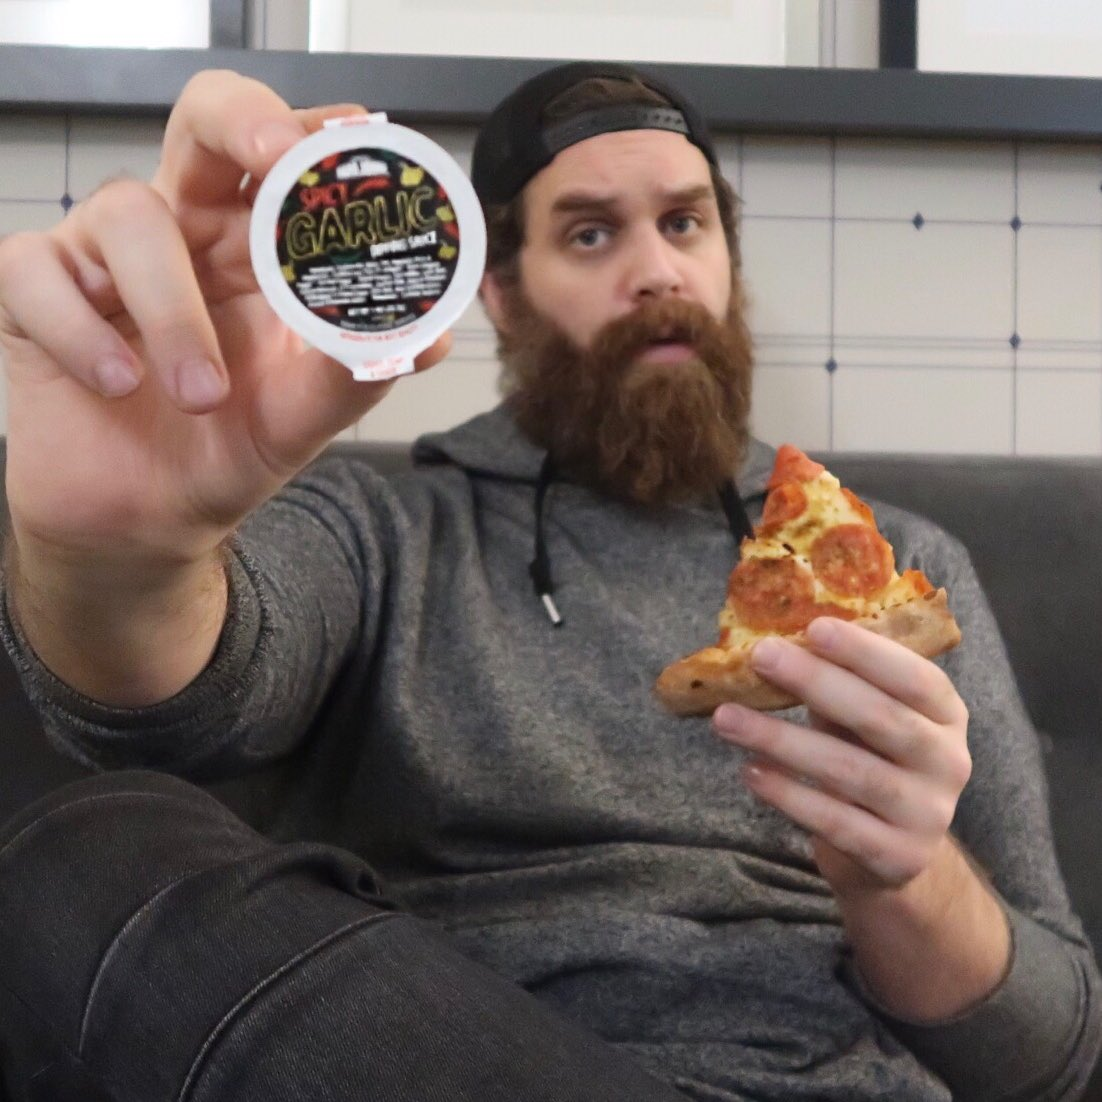 How does Spicy Garlic sound to you? I've been dipping all day baby! @papajohns #NationalGarlicDay, #SpicyGarlicSauce #sponsored